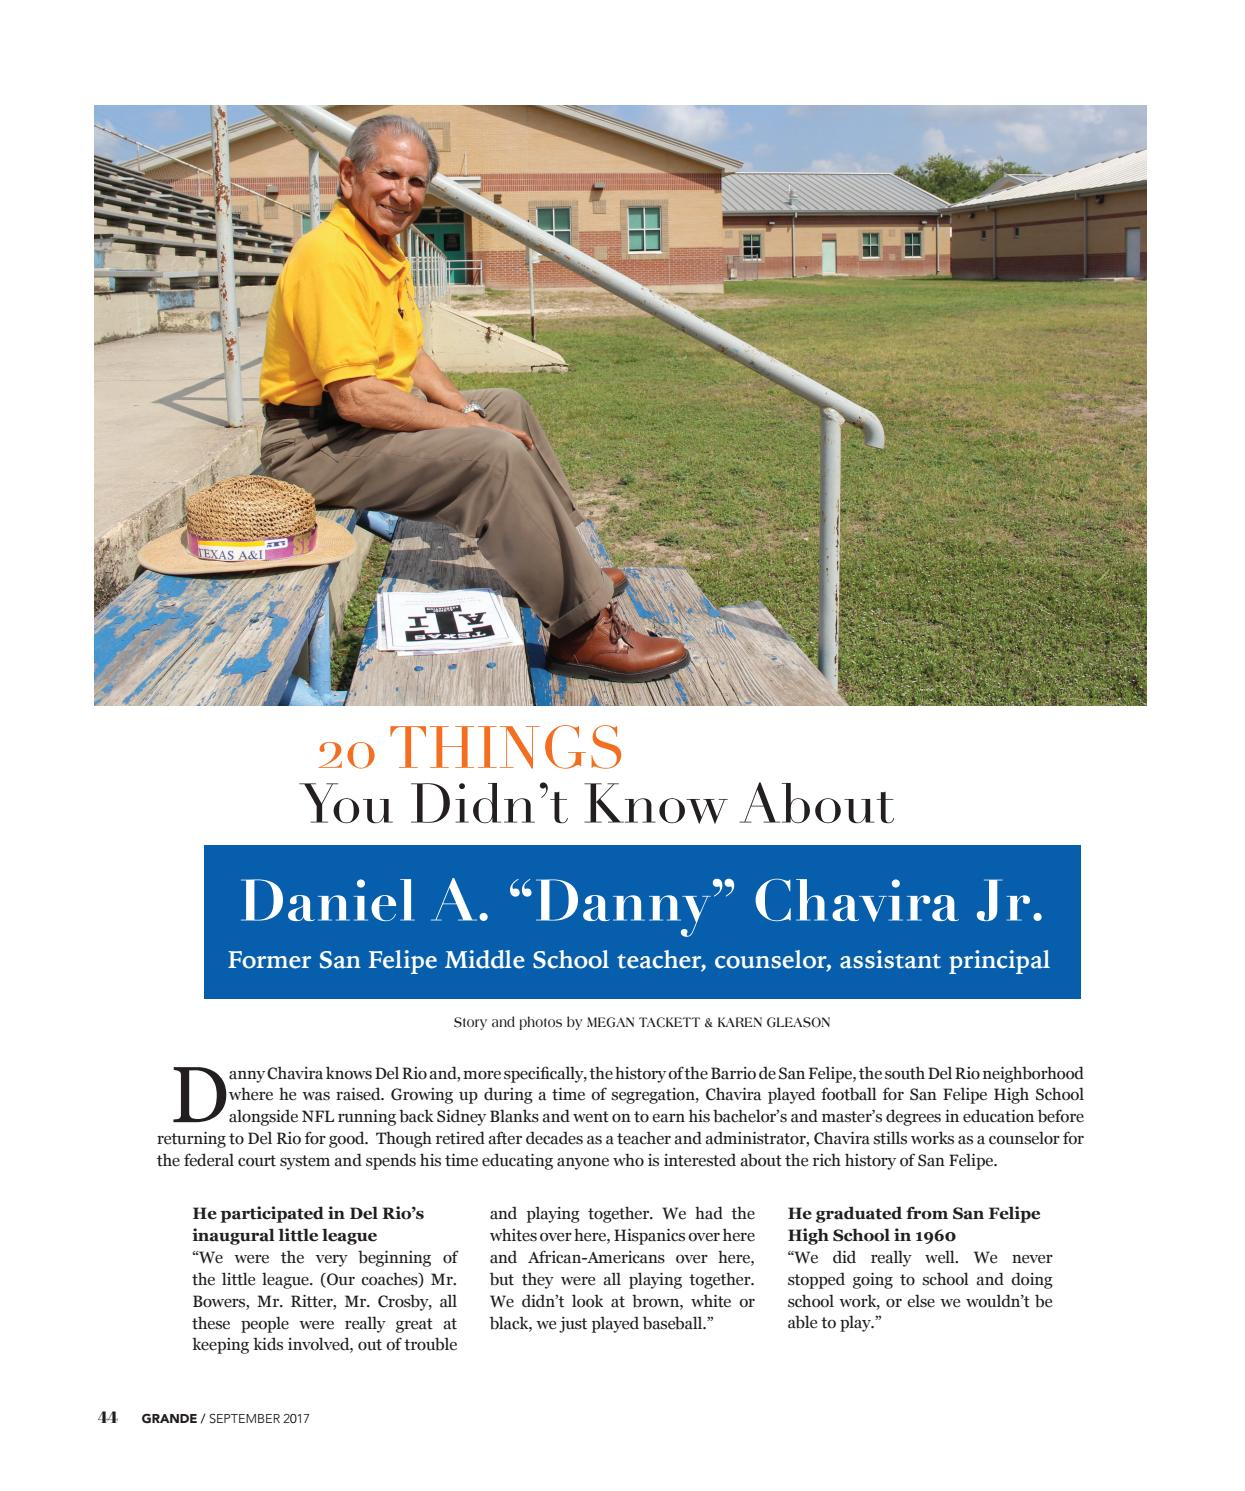 20 Things You Didnt Know About Play >> Del Rio Grande 0917 By Del Rio News Herald Issuu